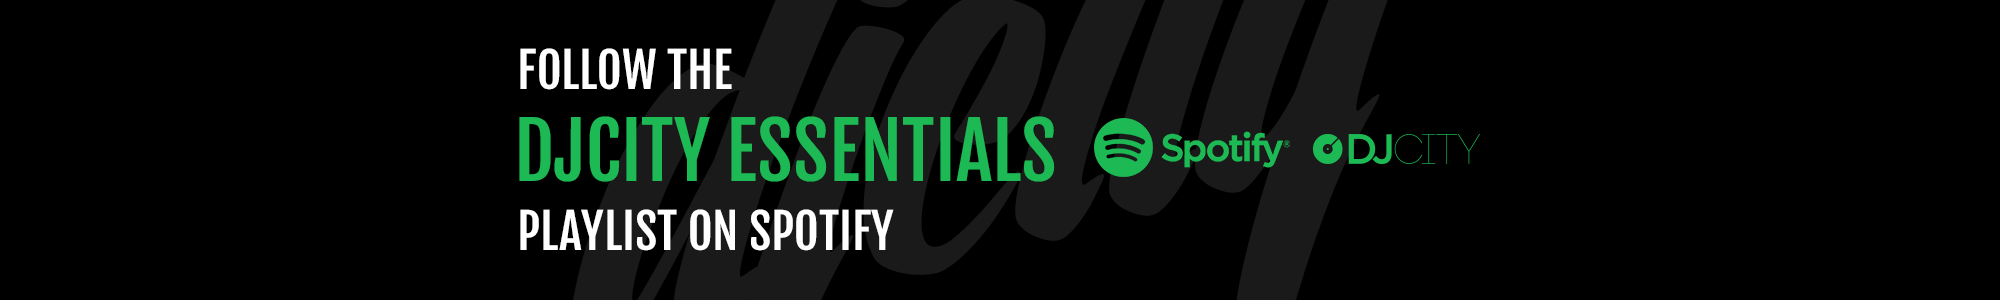 Spotify DJcity Essentials Playlist